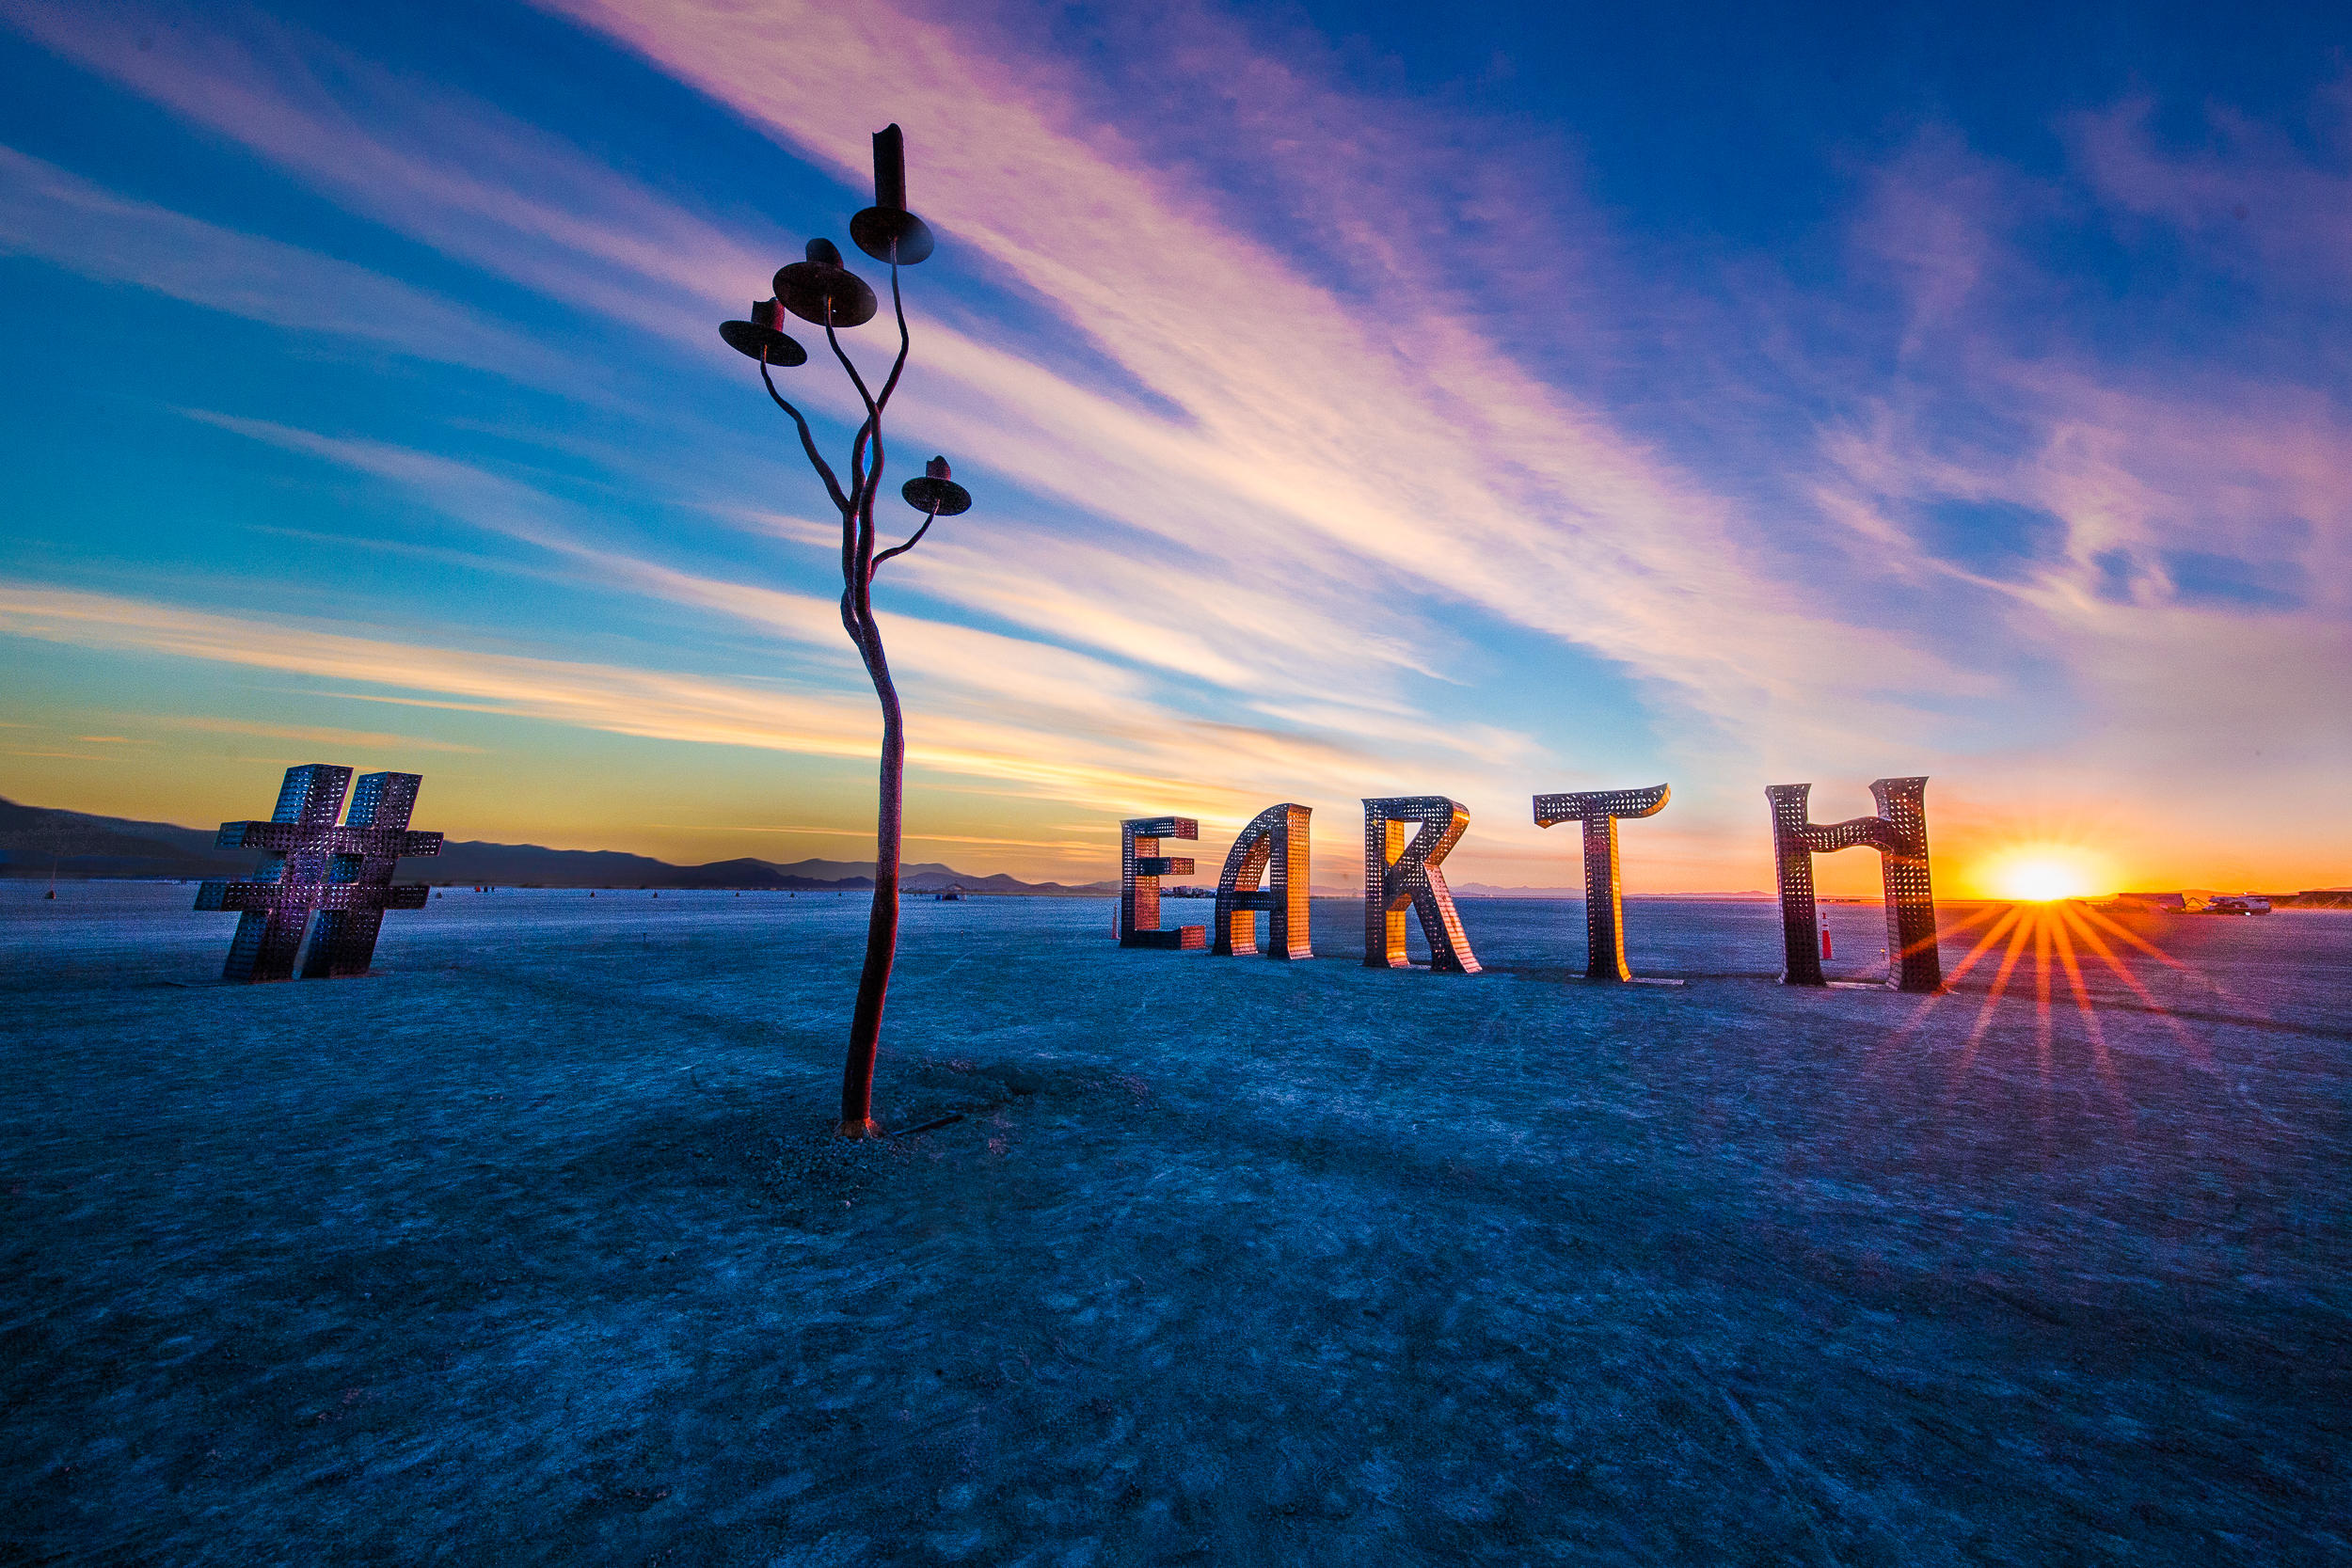 At Earth Hashtag Home image by Peter Ruprecht.jpg